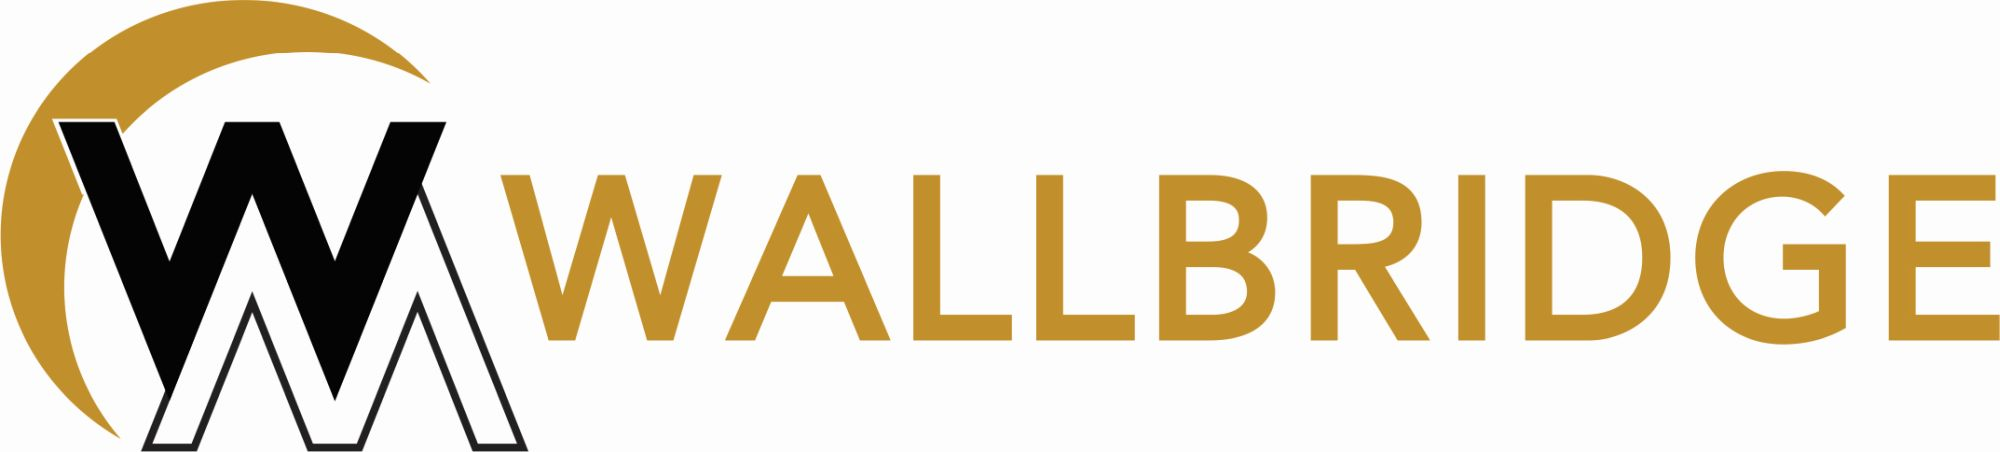 Wallbridge Intersects 4.06 g/t gold over 51.70 metres in Tabasco, 4.88 g/t gold over 18.95 metres in the Main Gabbro and 15.73 g/t gold over 3